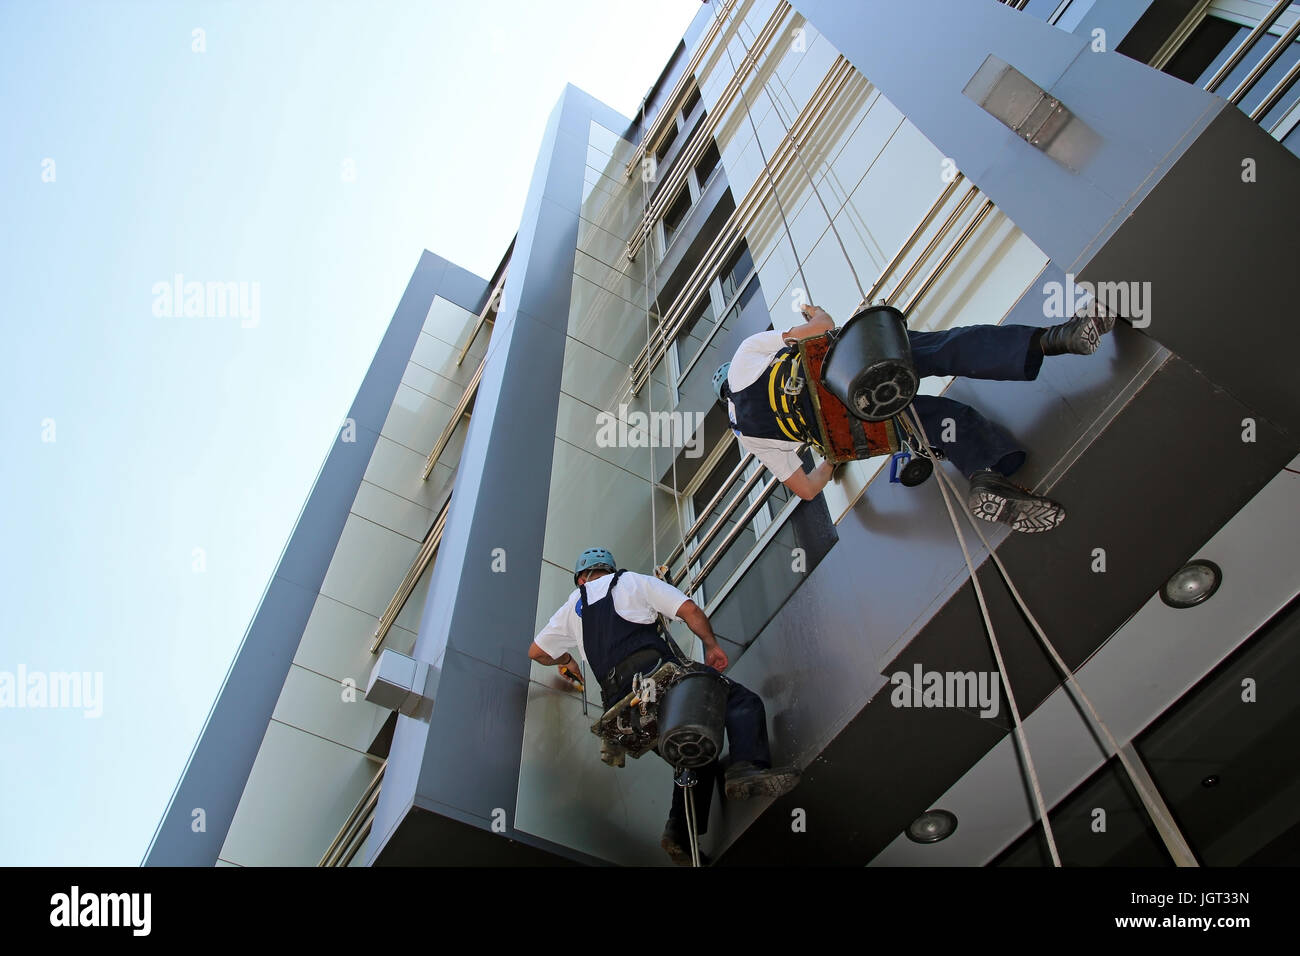 Workers washing the windows facade of a modern office building. - Stock Image